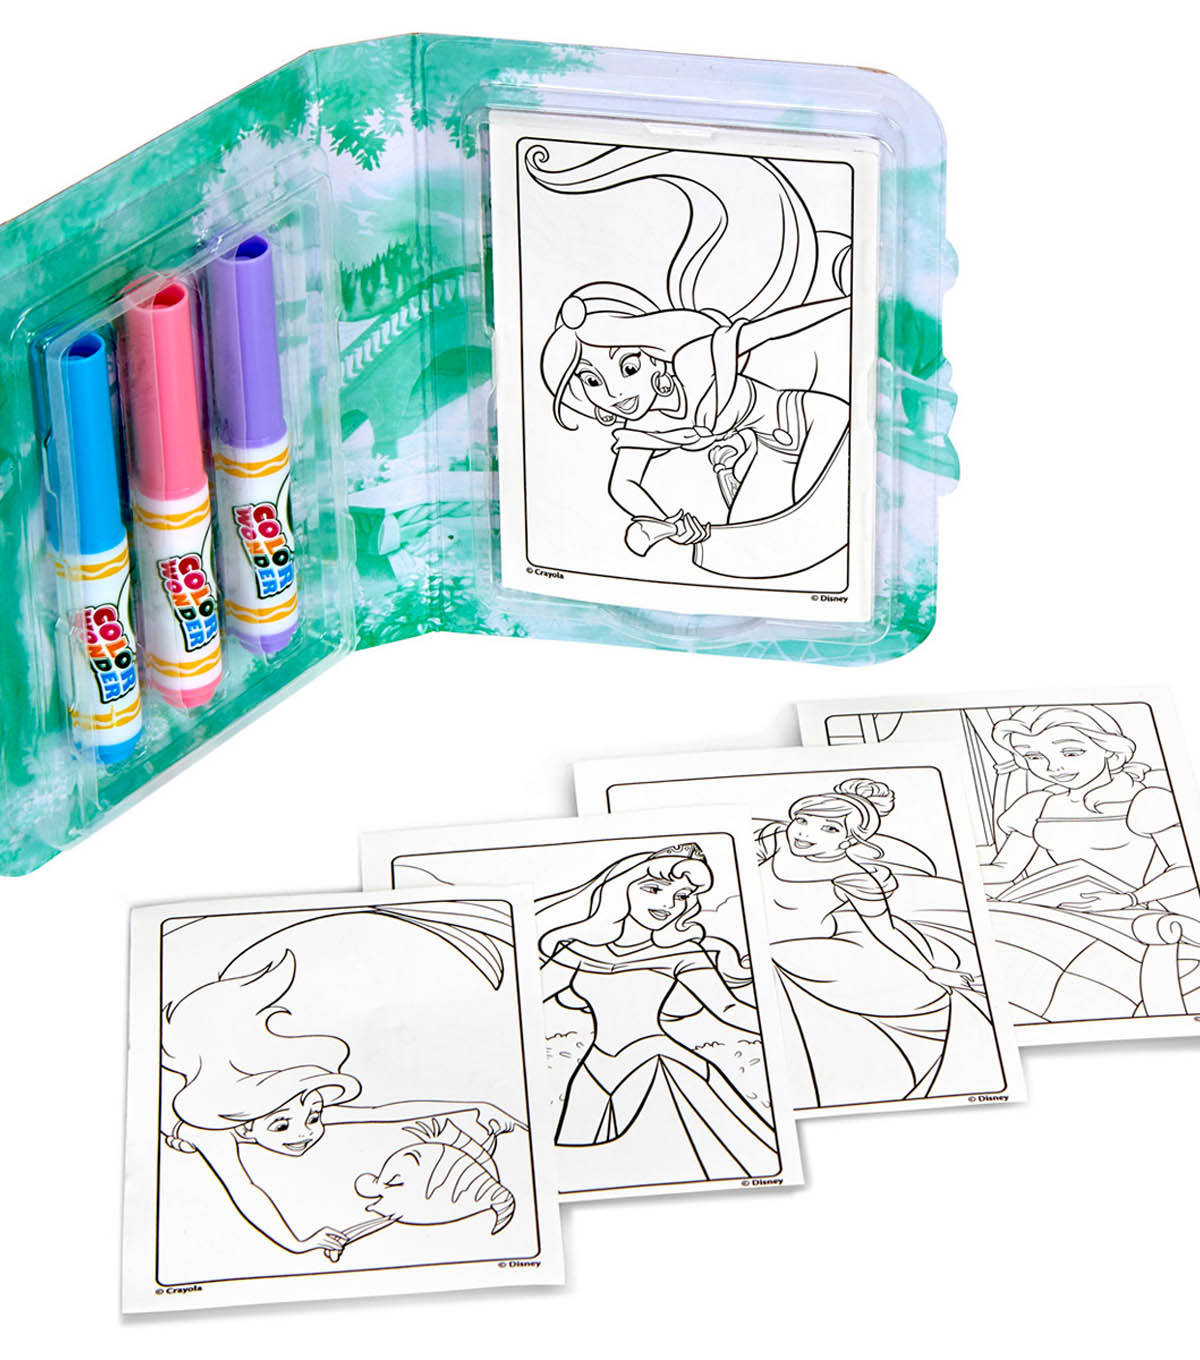 Crayola Color Wonder On The Go Coloring Kit-Disney Princess